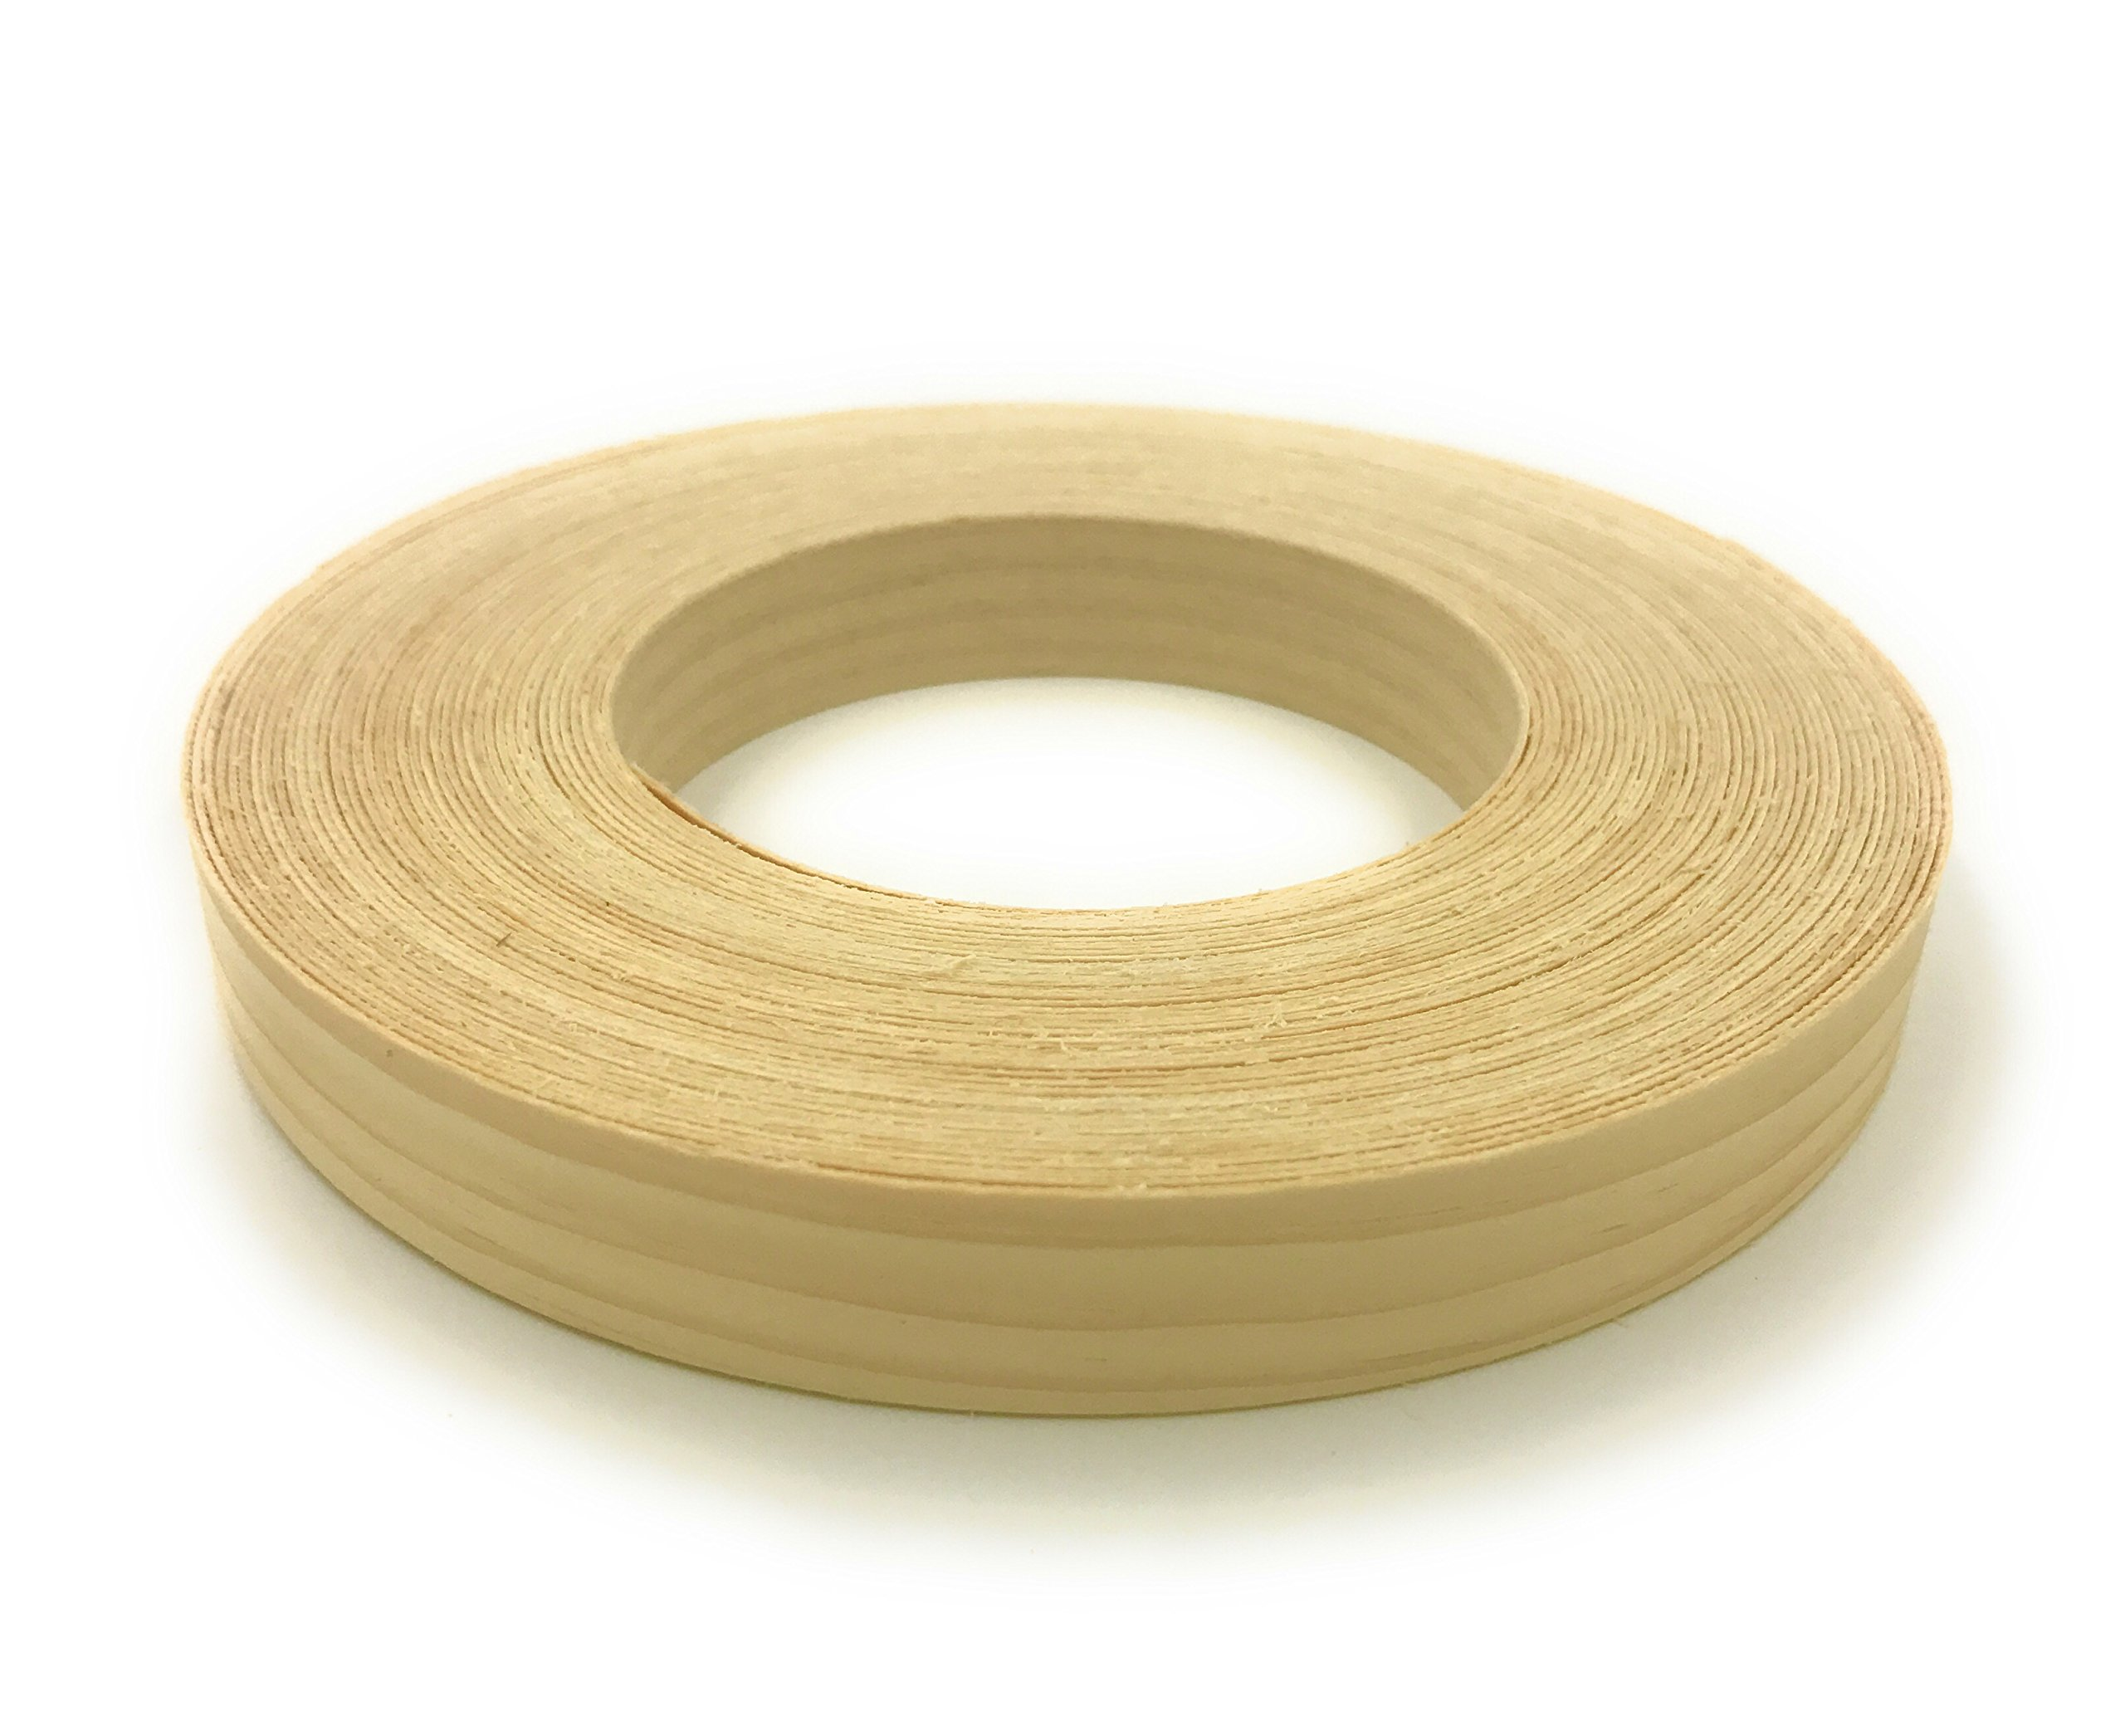 White Pine 3/4'' X 50' Roll Preglued, Wood Veneer Edge banding, Flexible Wood Tape, Easy Application Iron On with Hot Melt Adhesive. Smooth Sanded Finish.. Made In USA. by Edge Supply